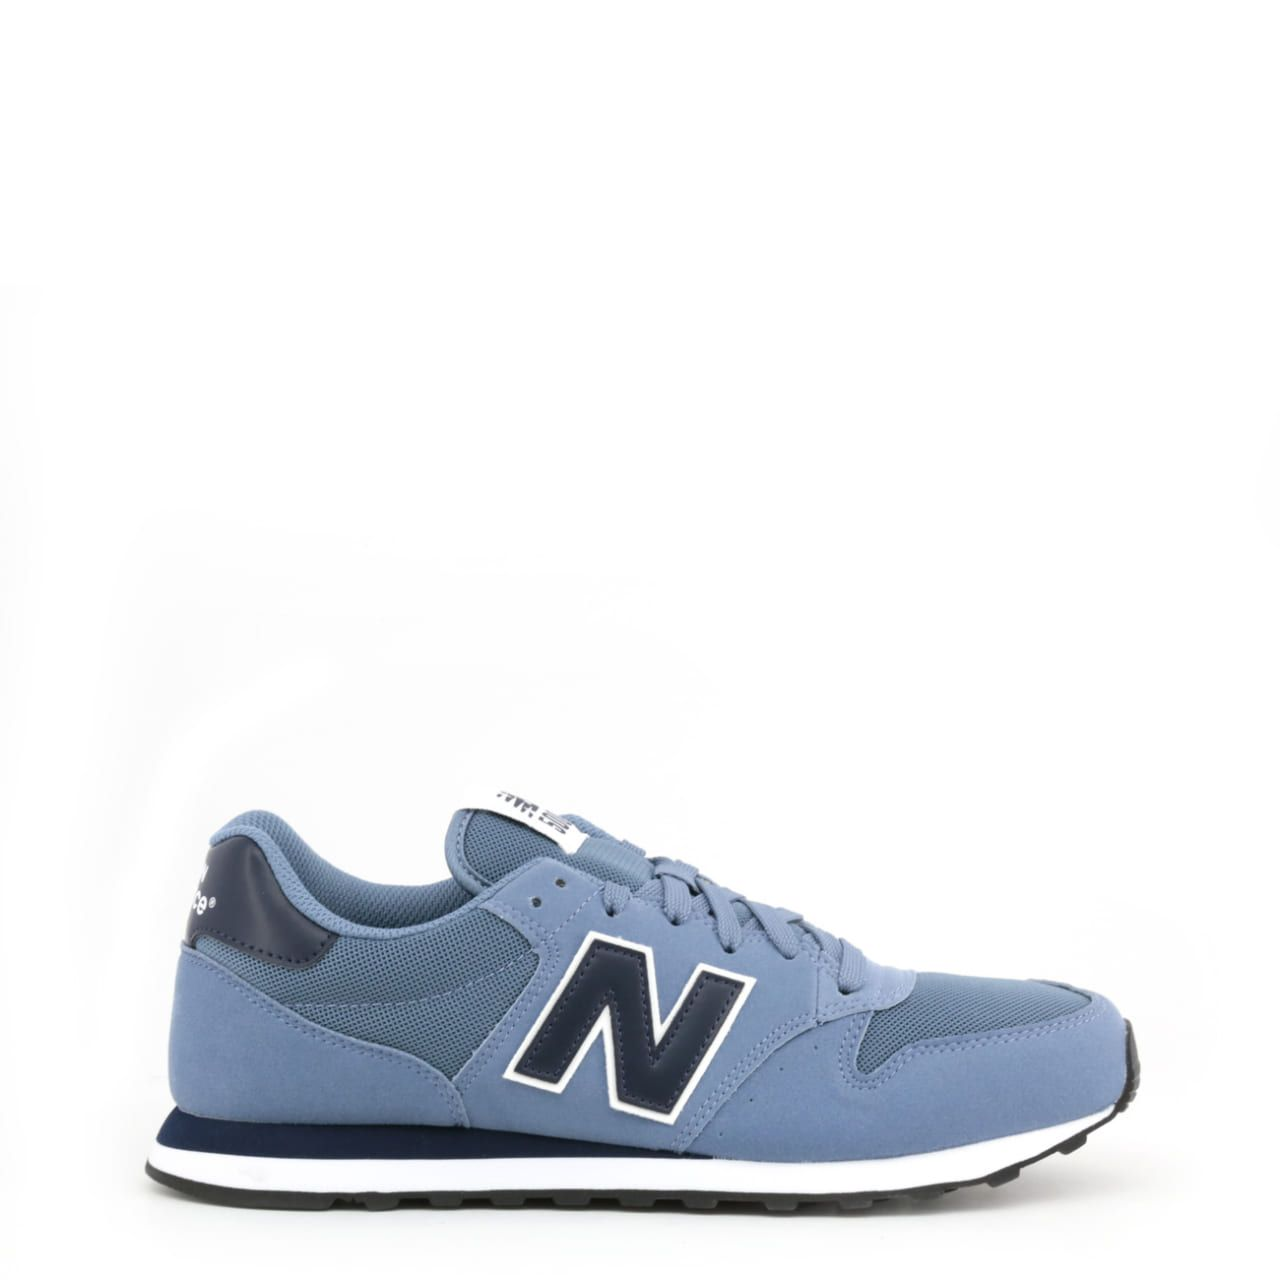 New Balance - GM500  bdb32644a5cbb